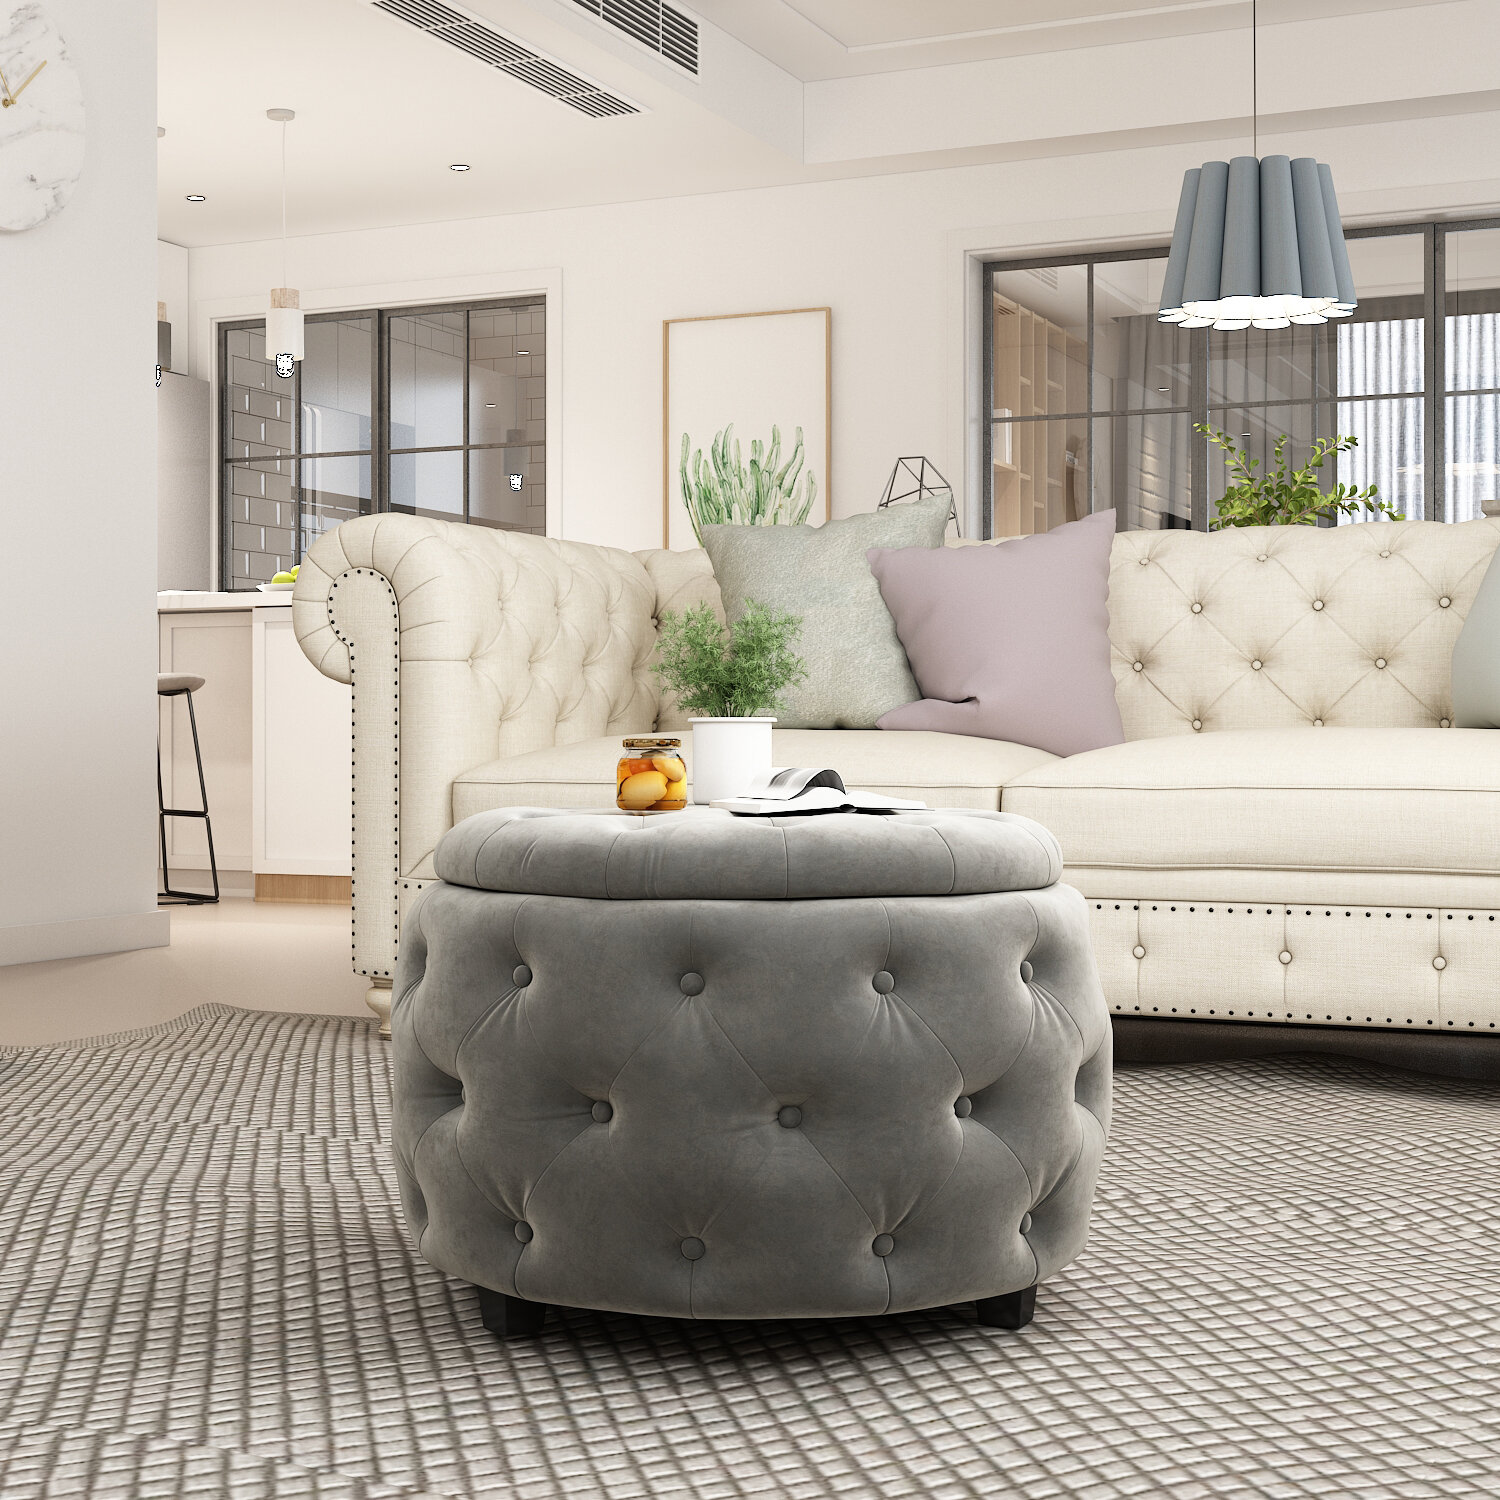 Outstanding Sylvester Round Tufted Storage Ottoman Ncnpc Chair Design For Home Ncnpcorg